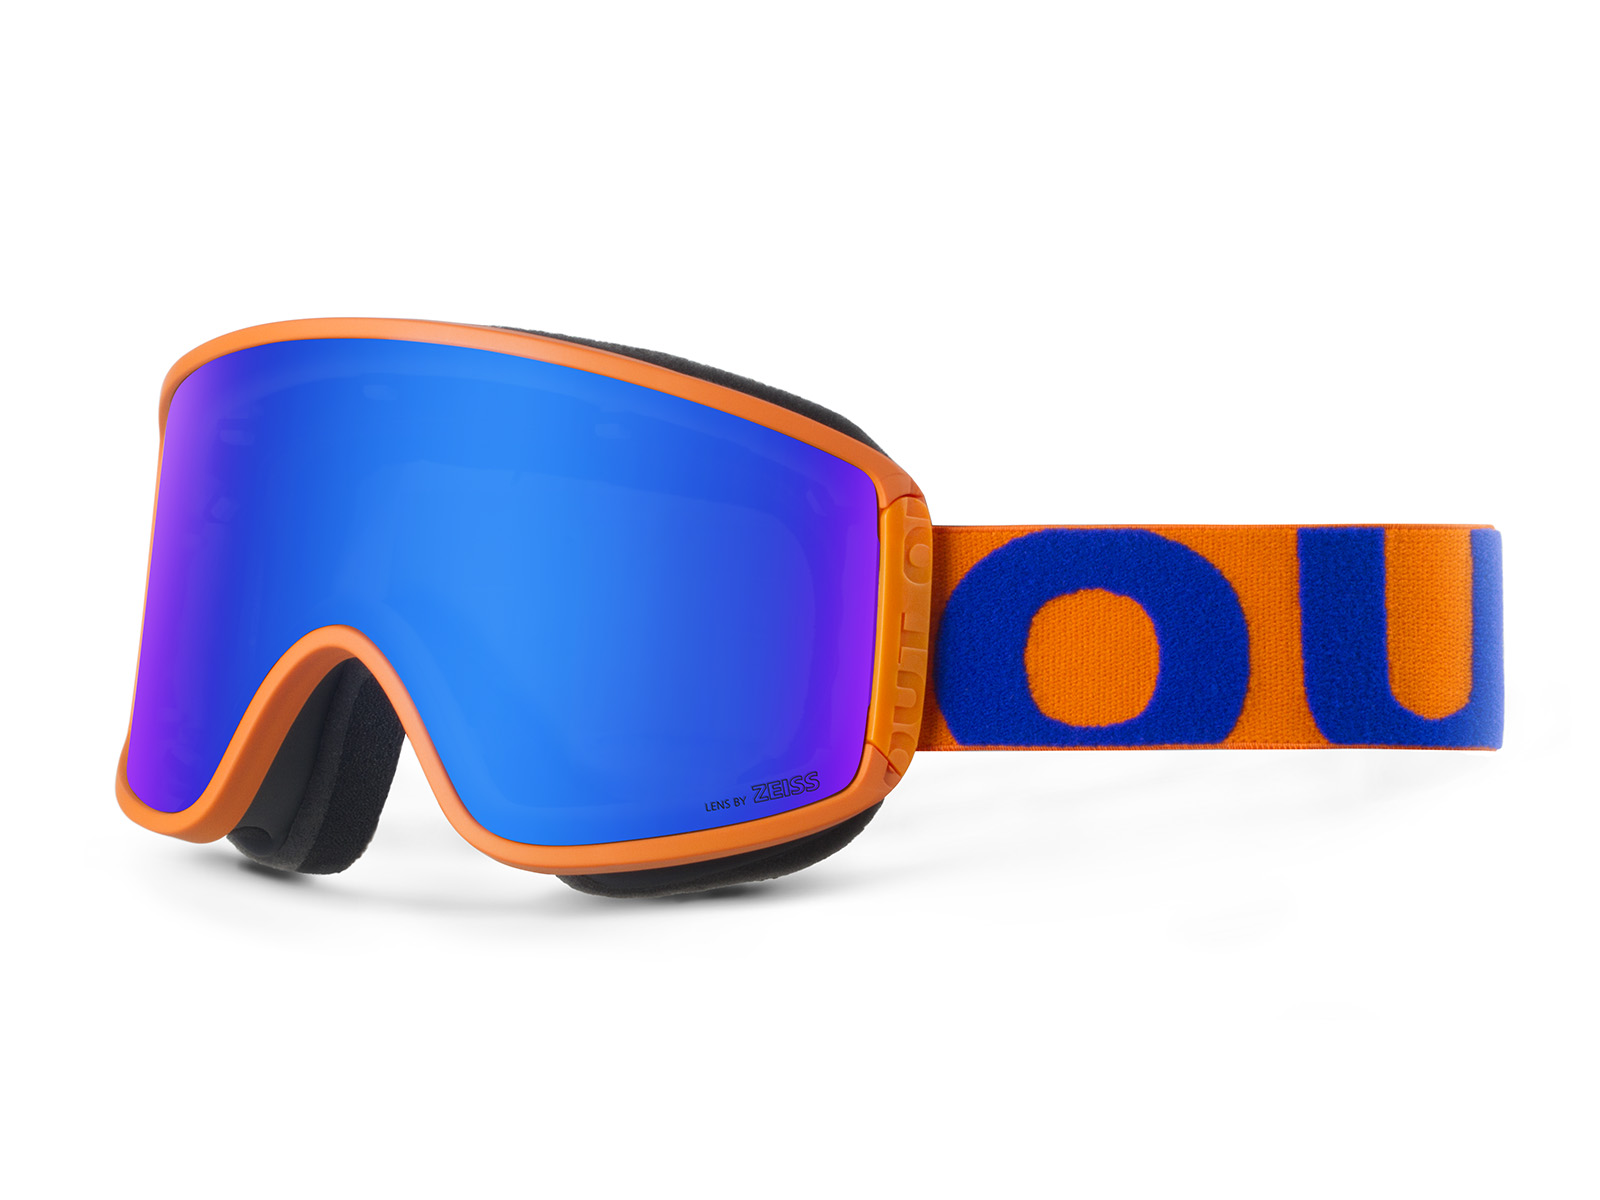 SHIFT BLUE ORANGE BLUE MCI GOGGLE